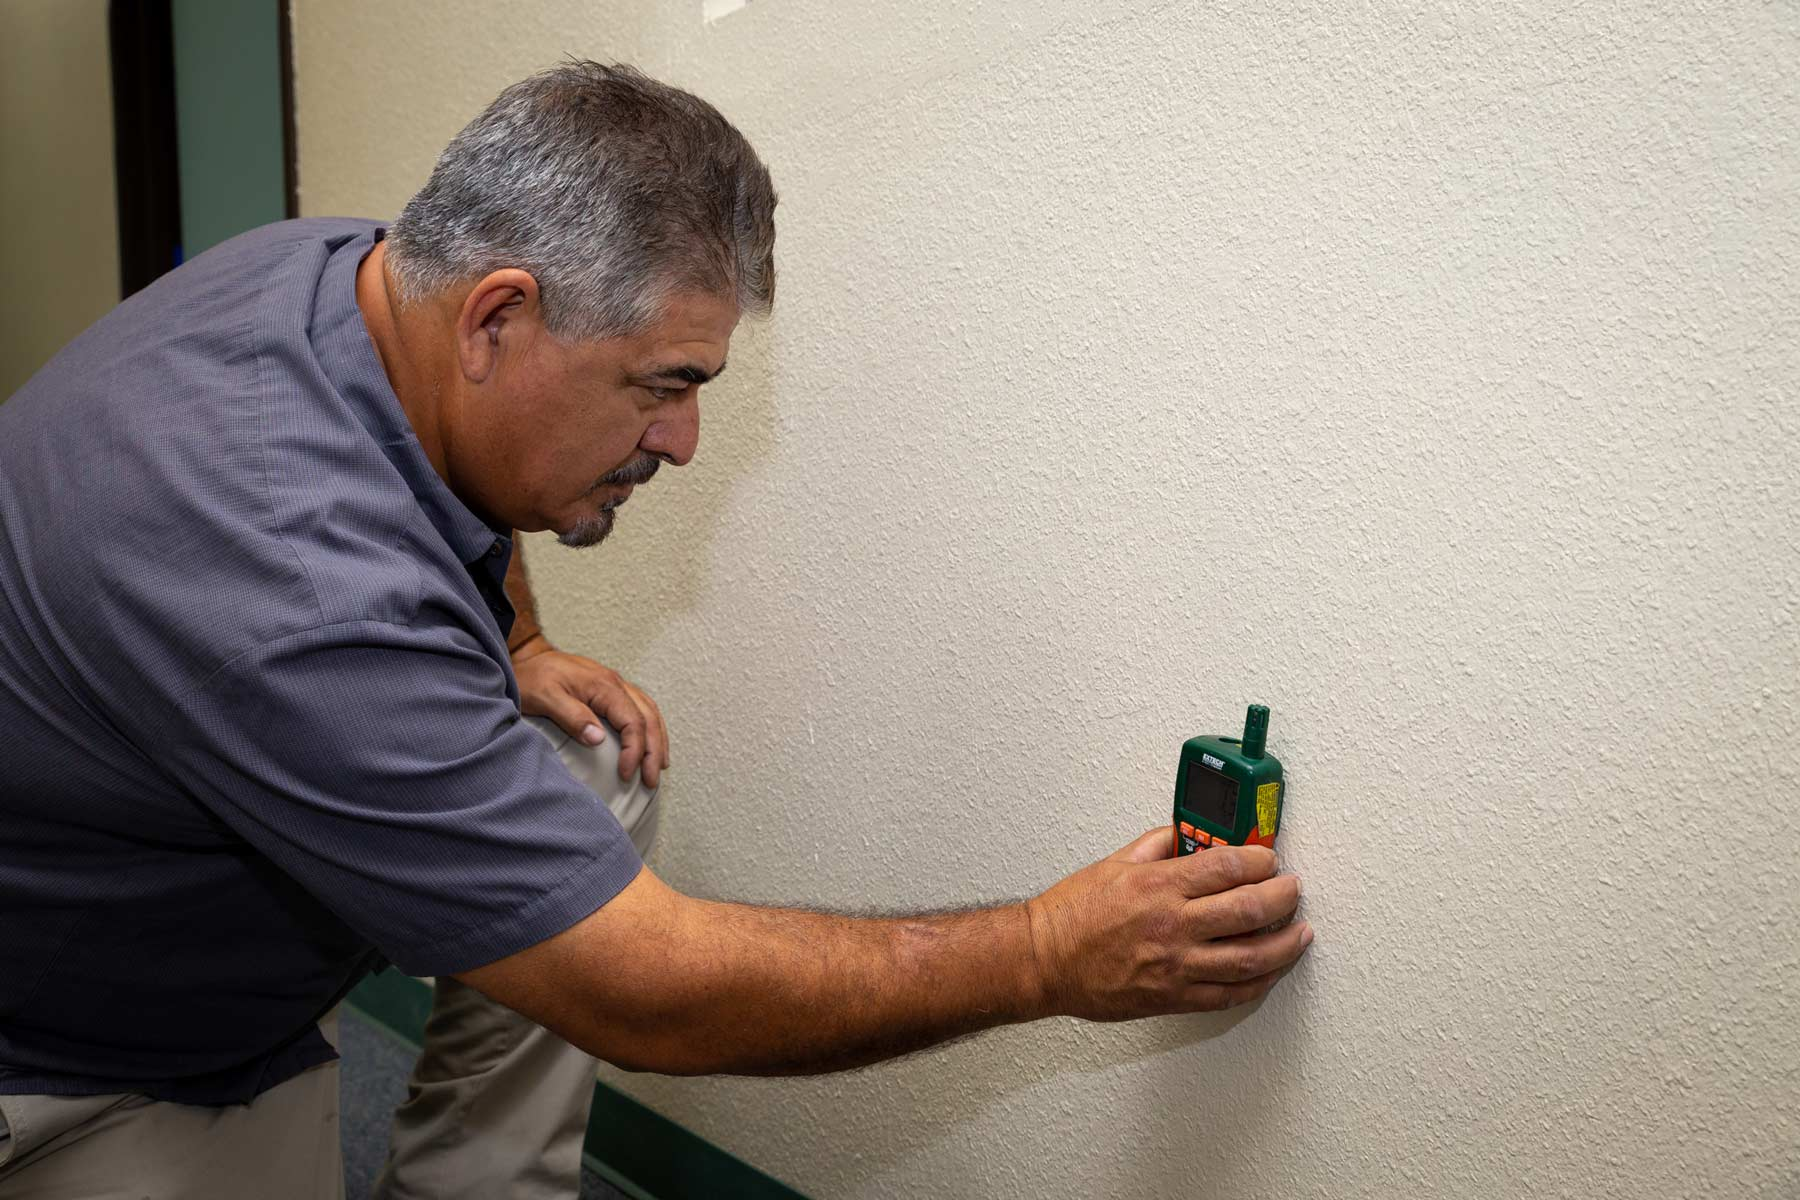 Experienced water damage restoration technician testing wall for moisture